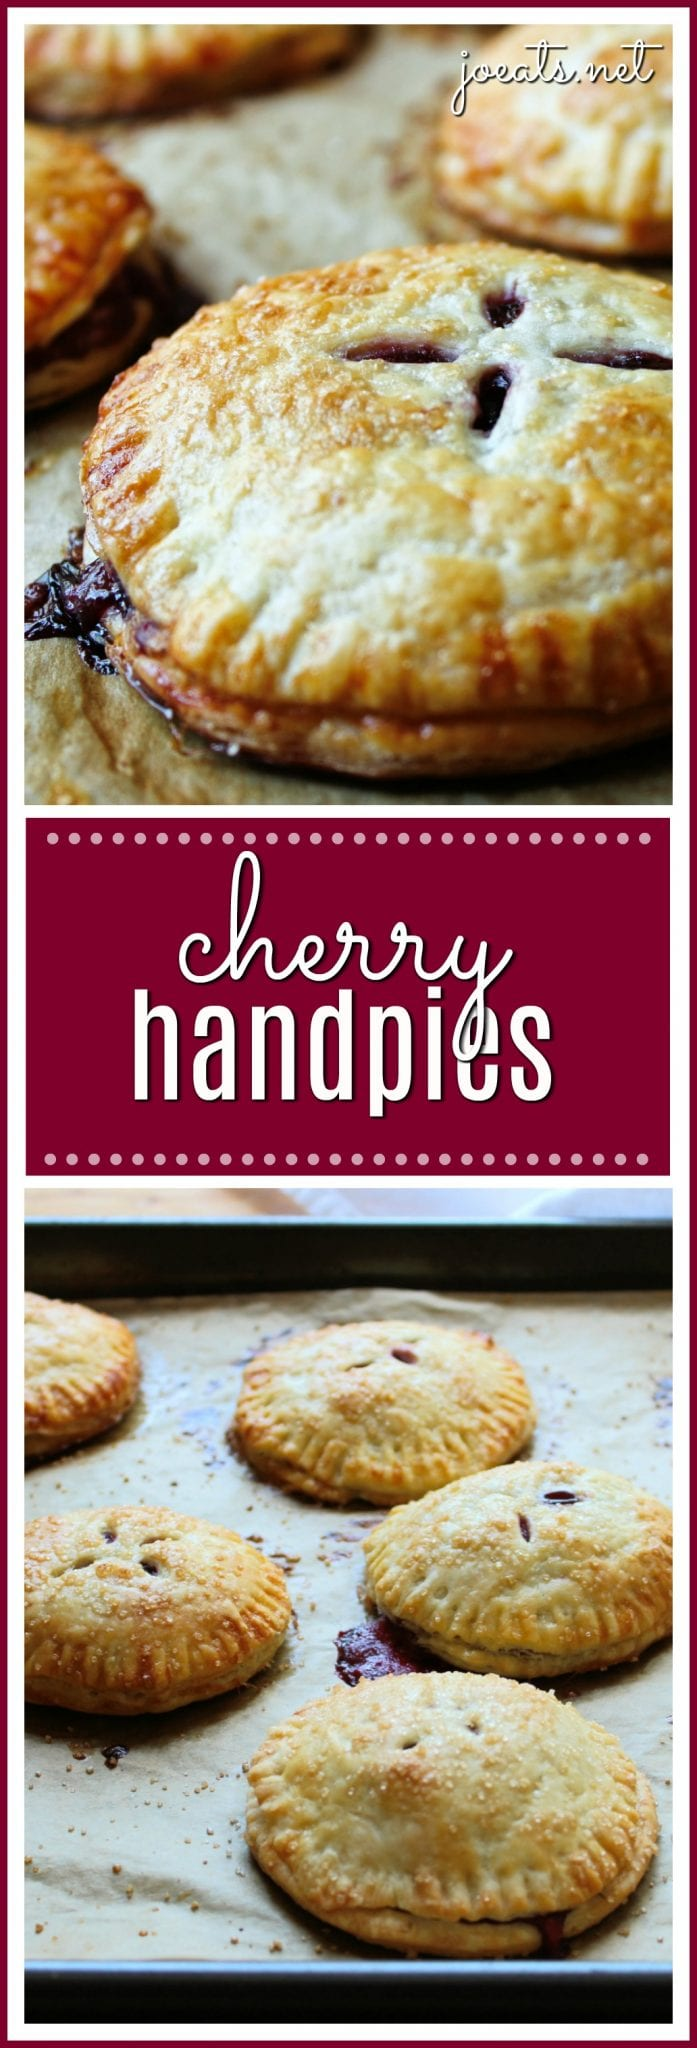 The little beauties have sweet, juicy cherries wrapped up in buttery, flaky pie dough. They're the perfect handheld treat. #pie #handpie #cherryhandpie #minidessert #dessert #baking #pies #cherry #adorablefood #joeats